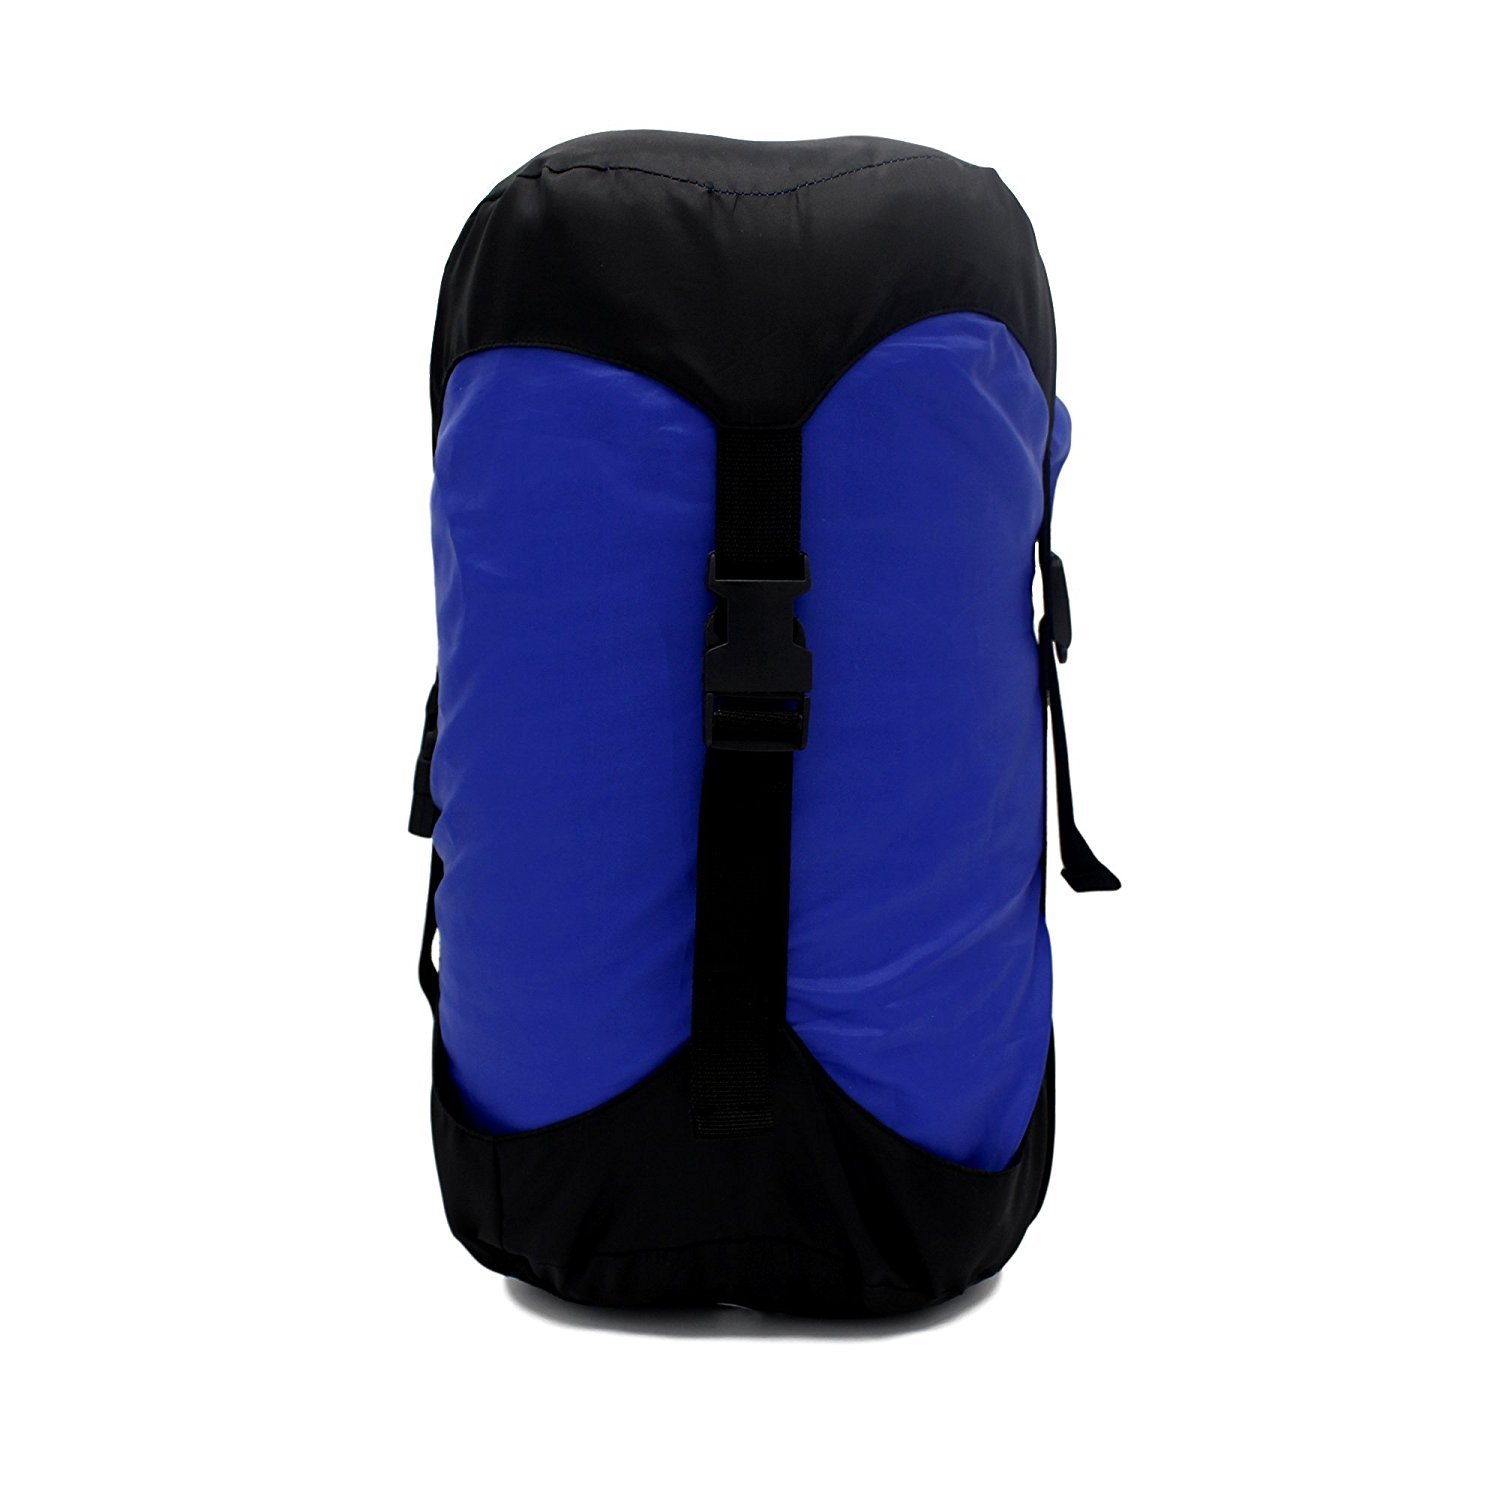 Waterproof Lightweight Compression Sack for Sleeping Bags Camping Hiking Backpacking Dilwe Compression Stuff Sack